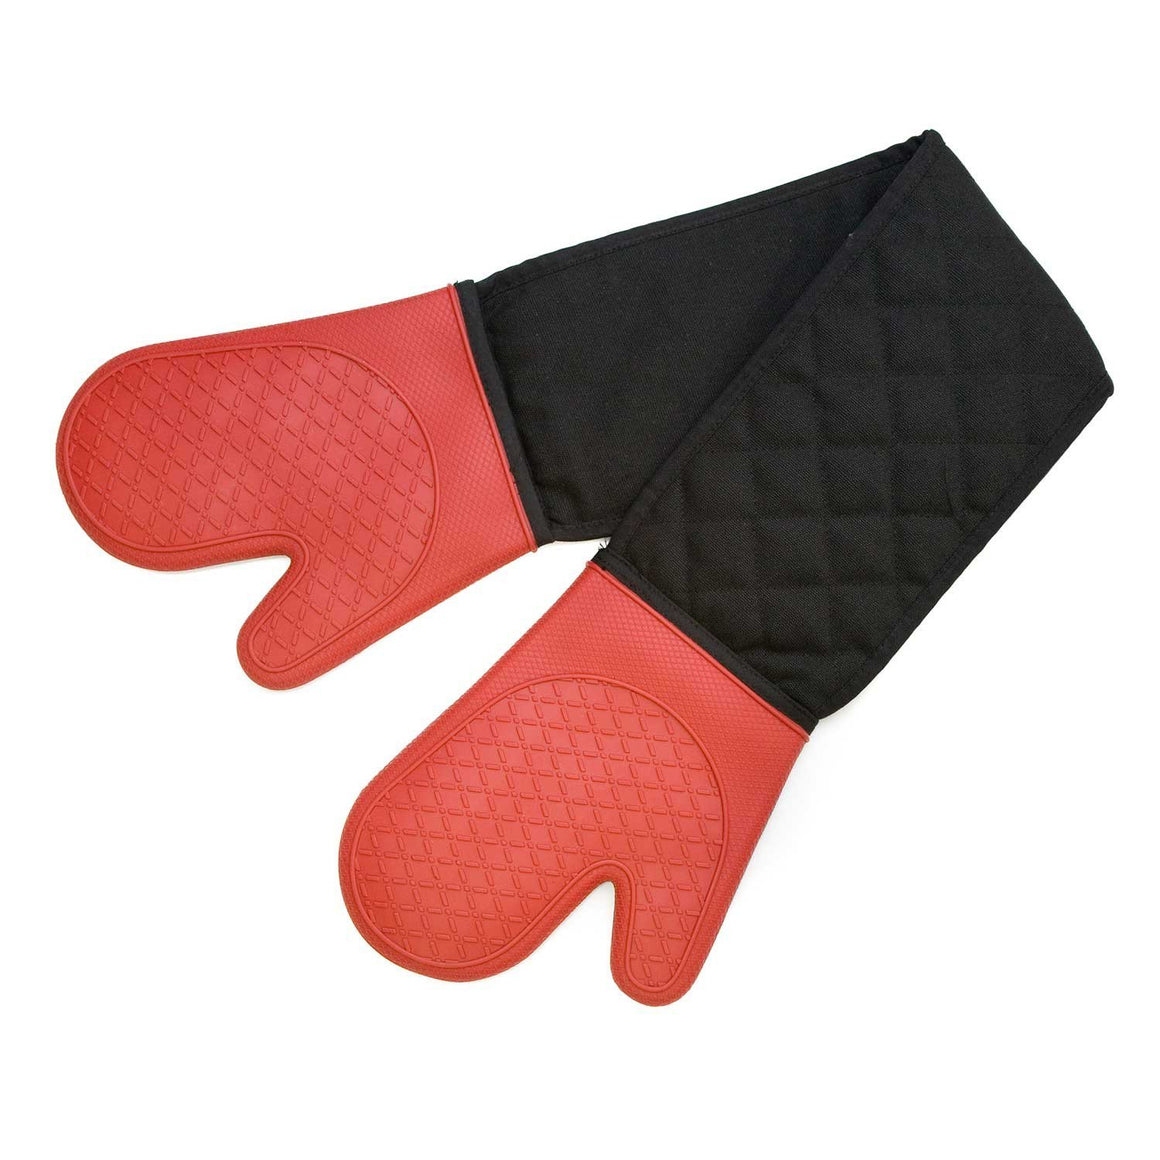 Cuisena Silicone & Fabric Double Oven Glove Red - Stuff-n-Things